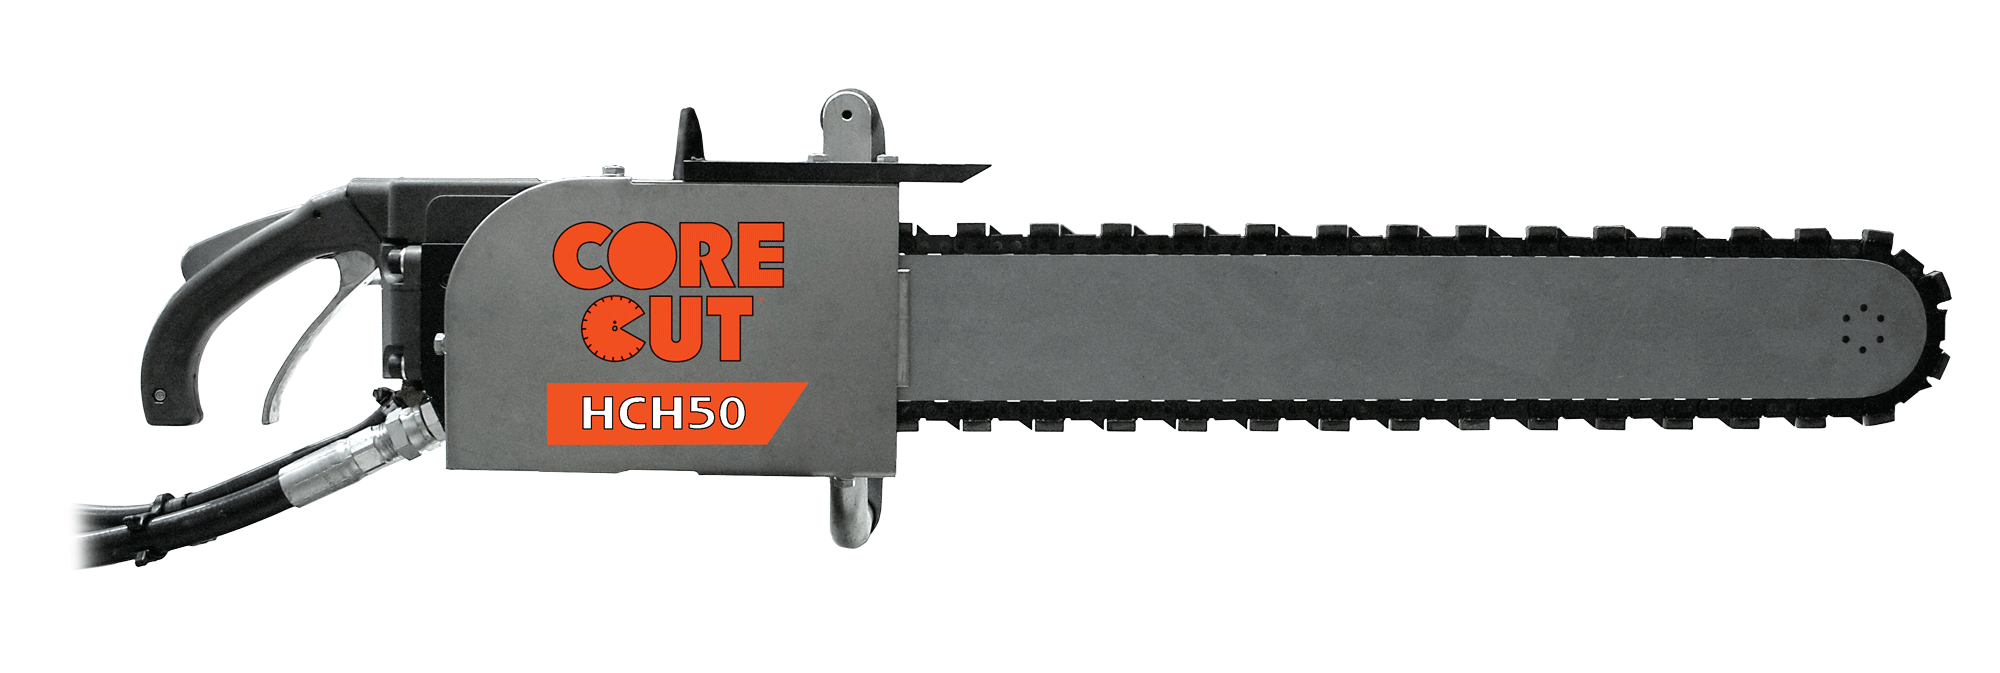 Chain saw blade png. Hch hand held flush